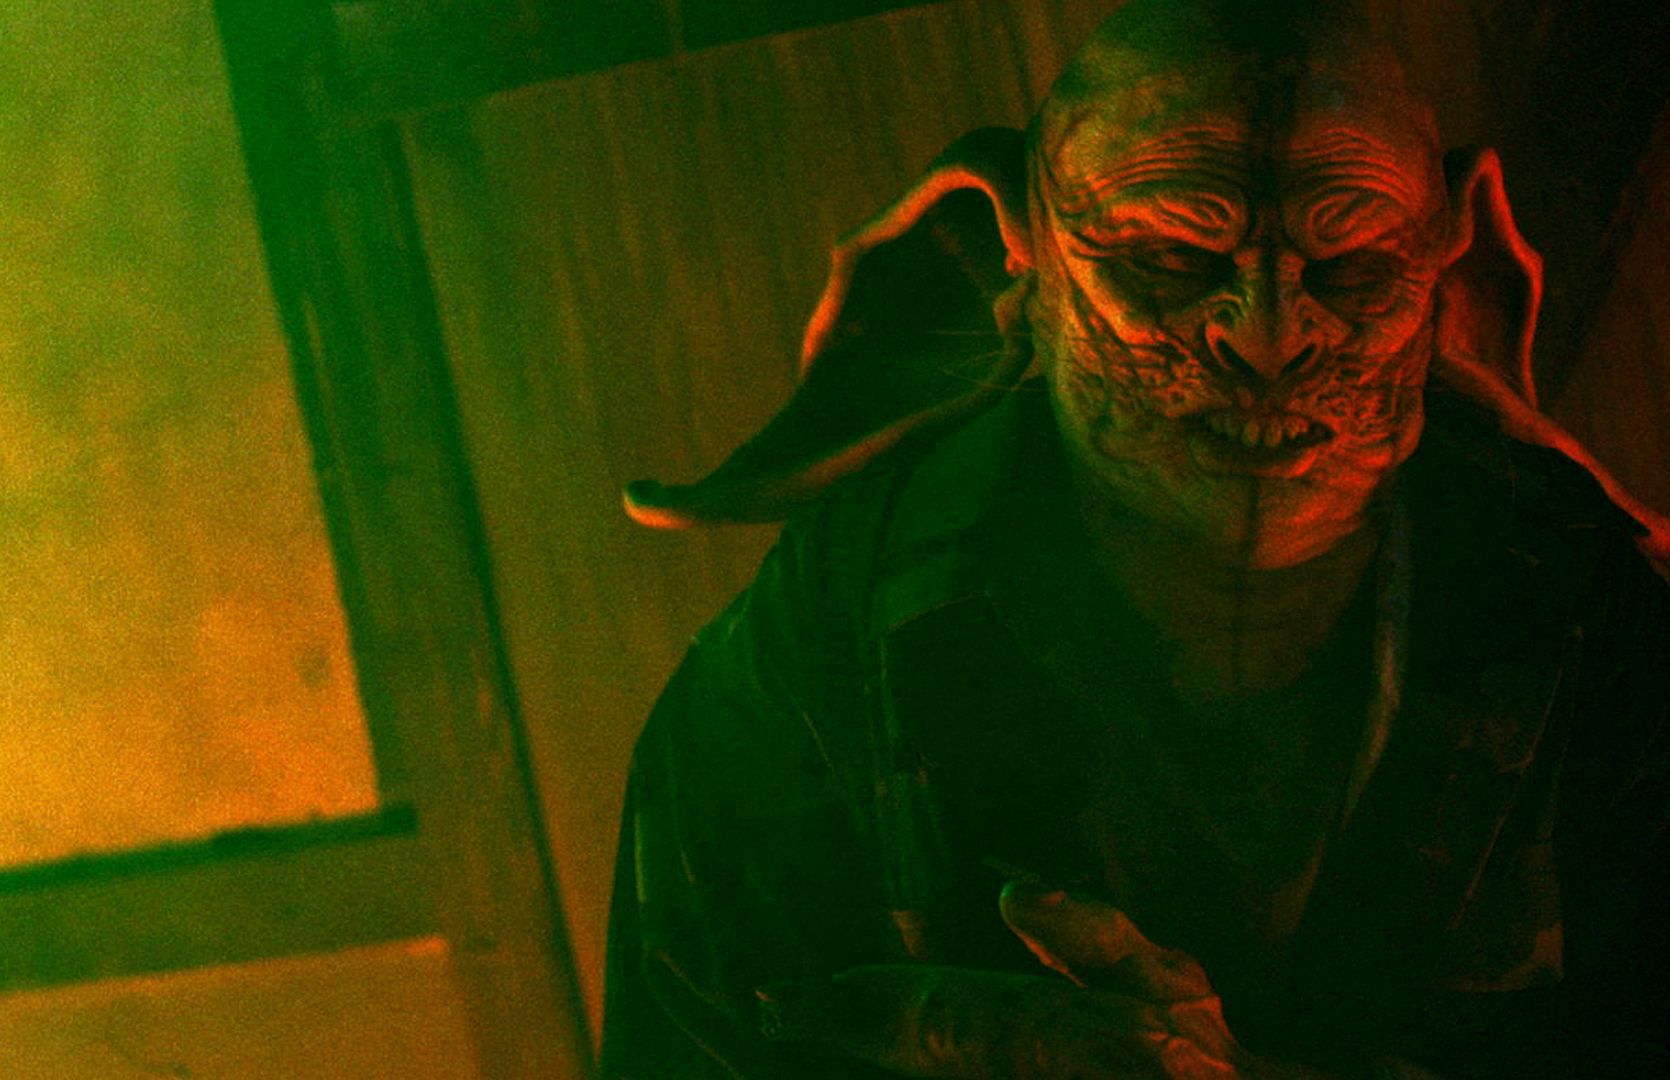 rottentail12